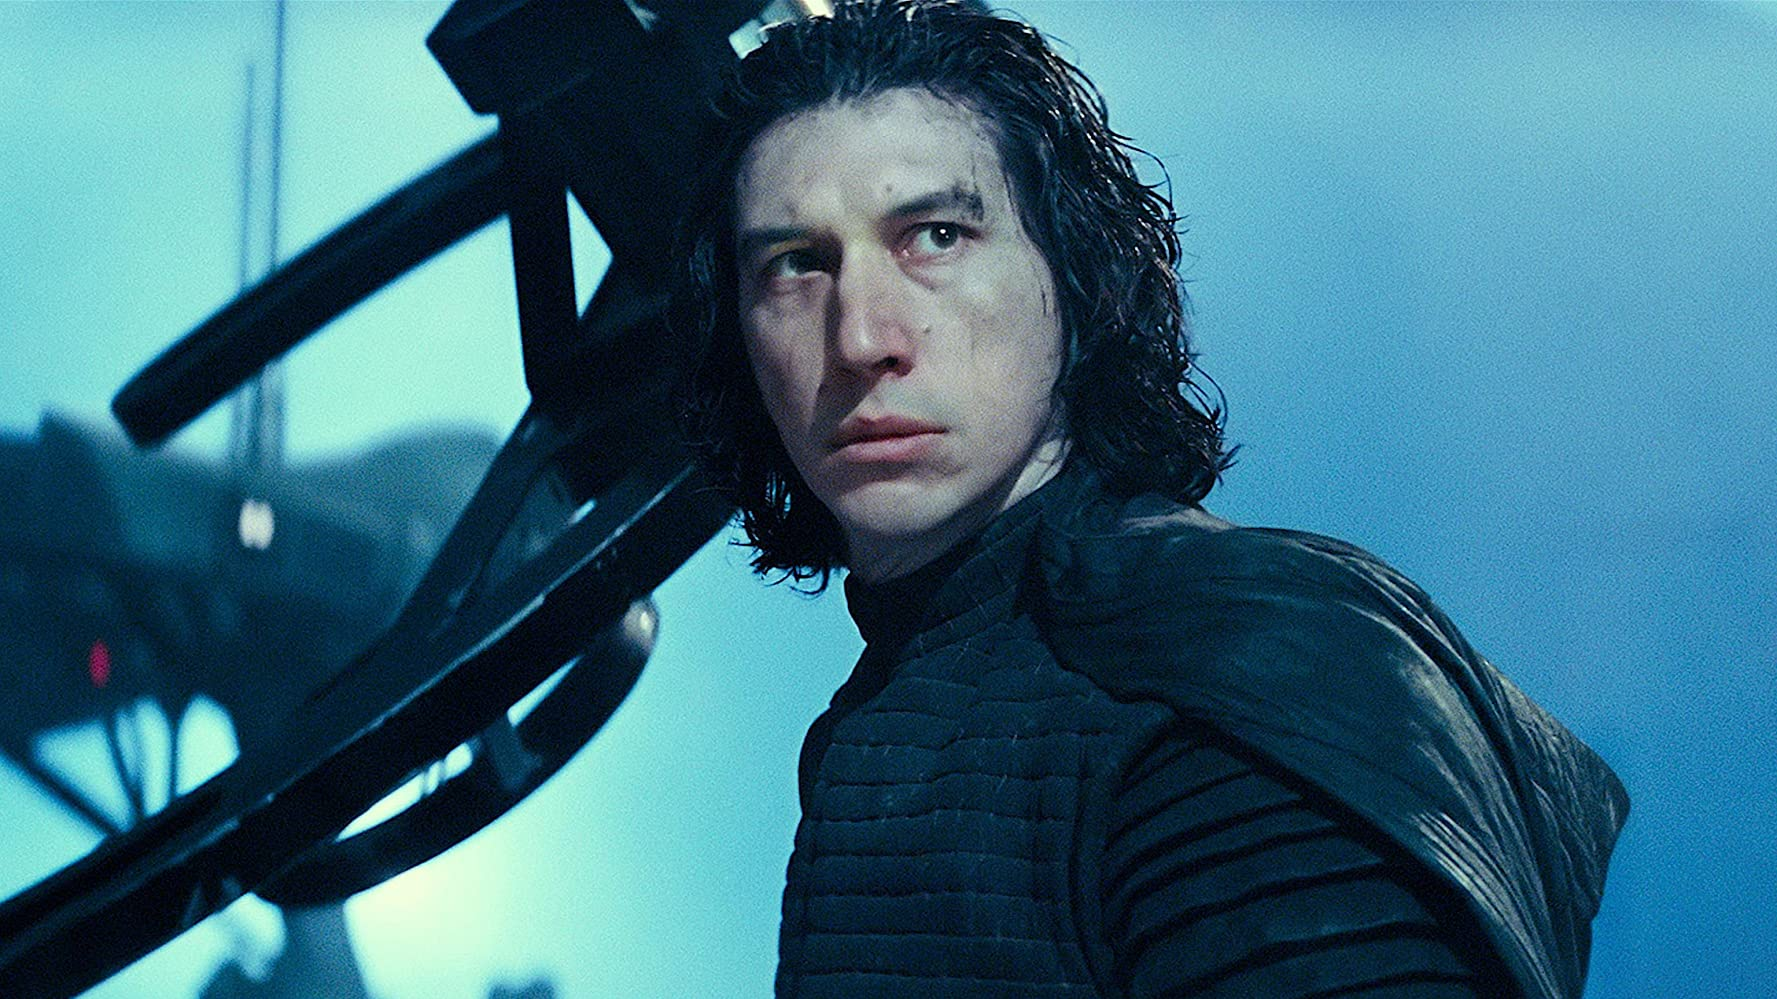 Adam Driver in Star Wars: Episode IX - The Rise of Skywalker (2019)